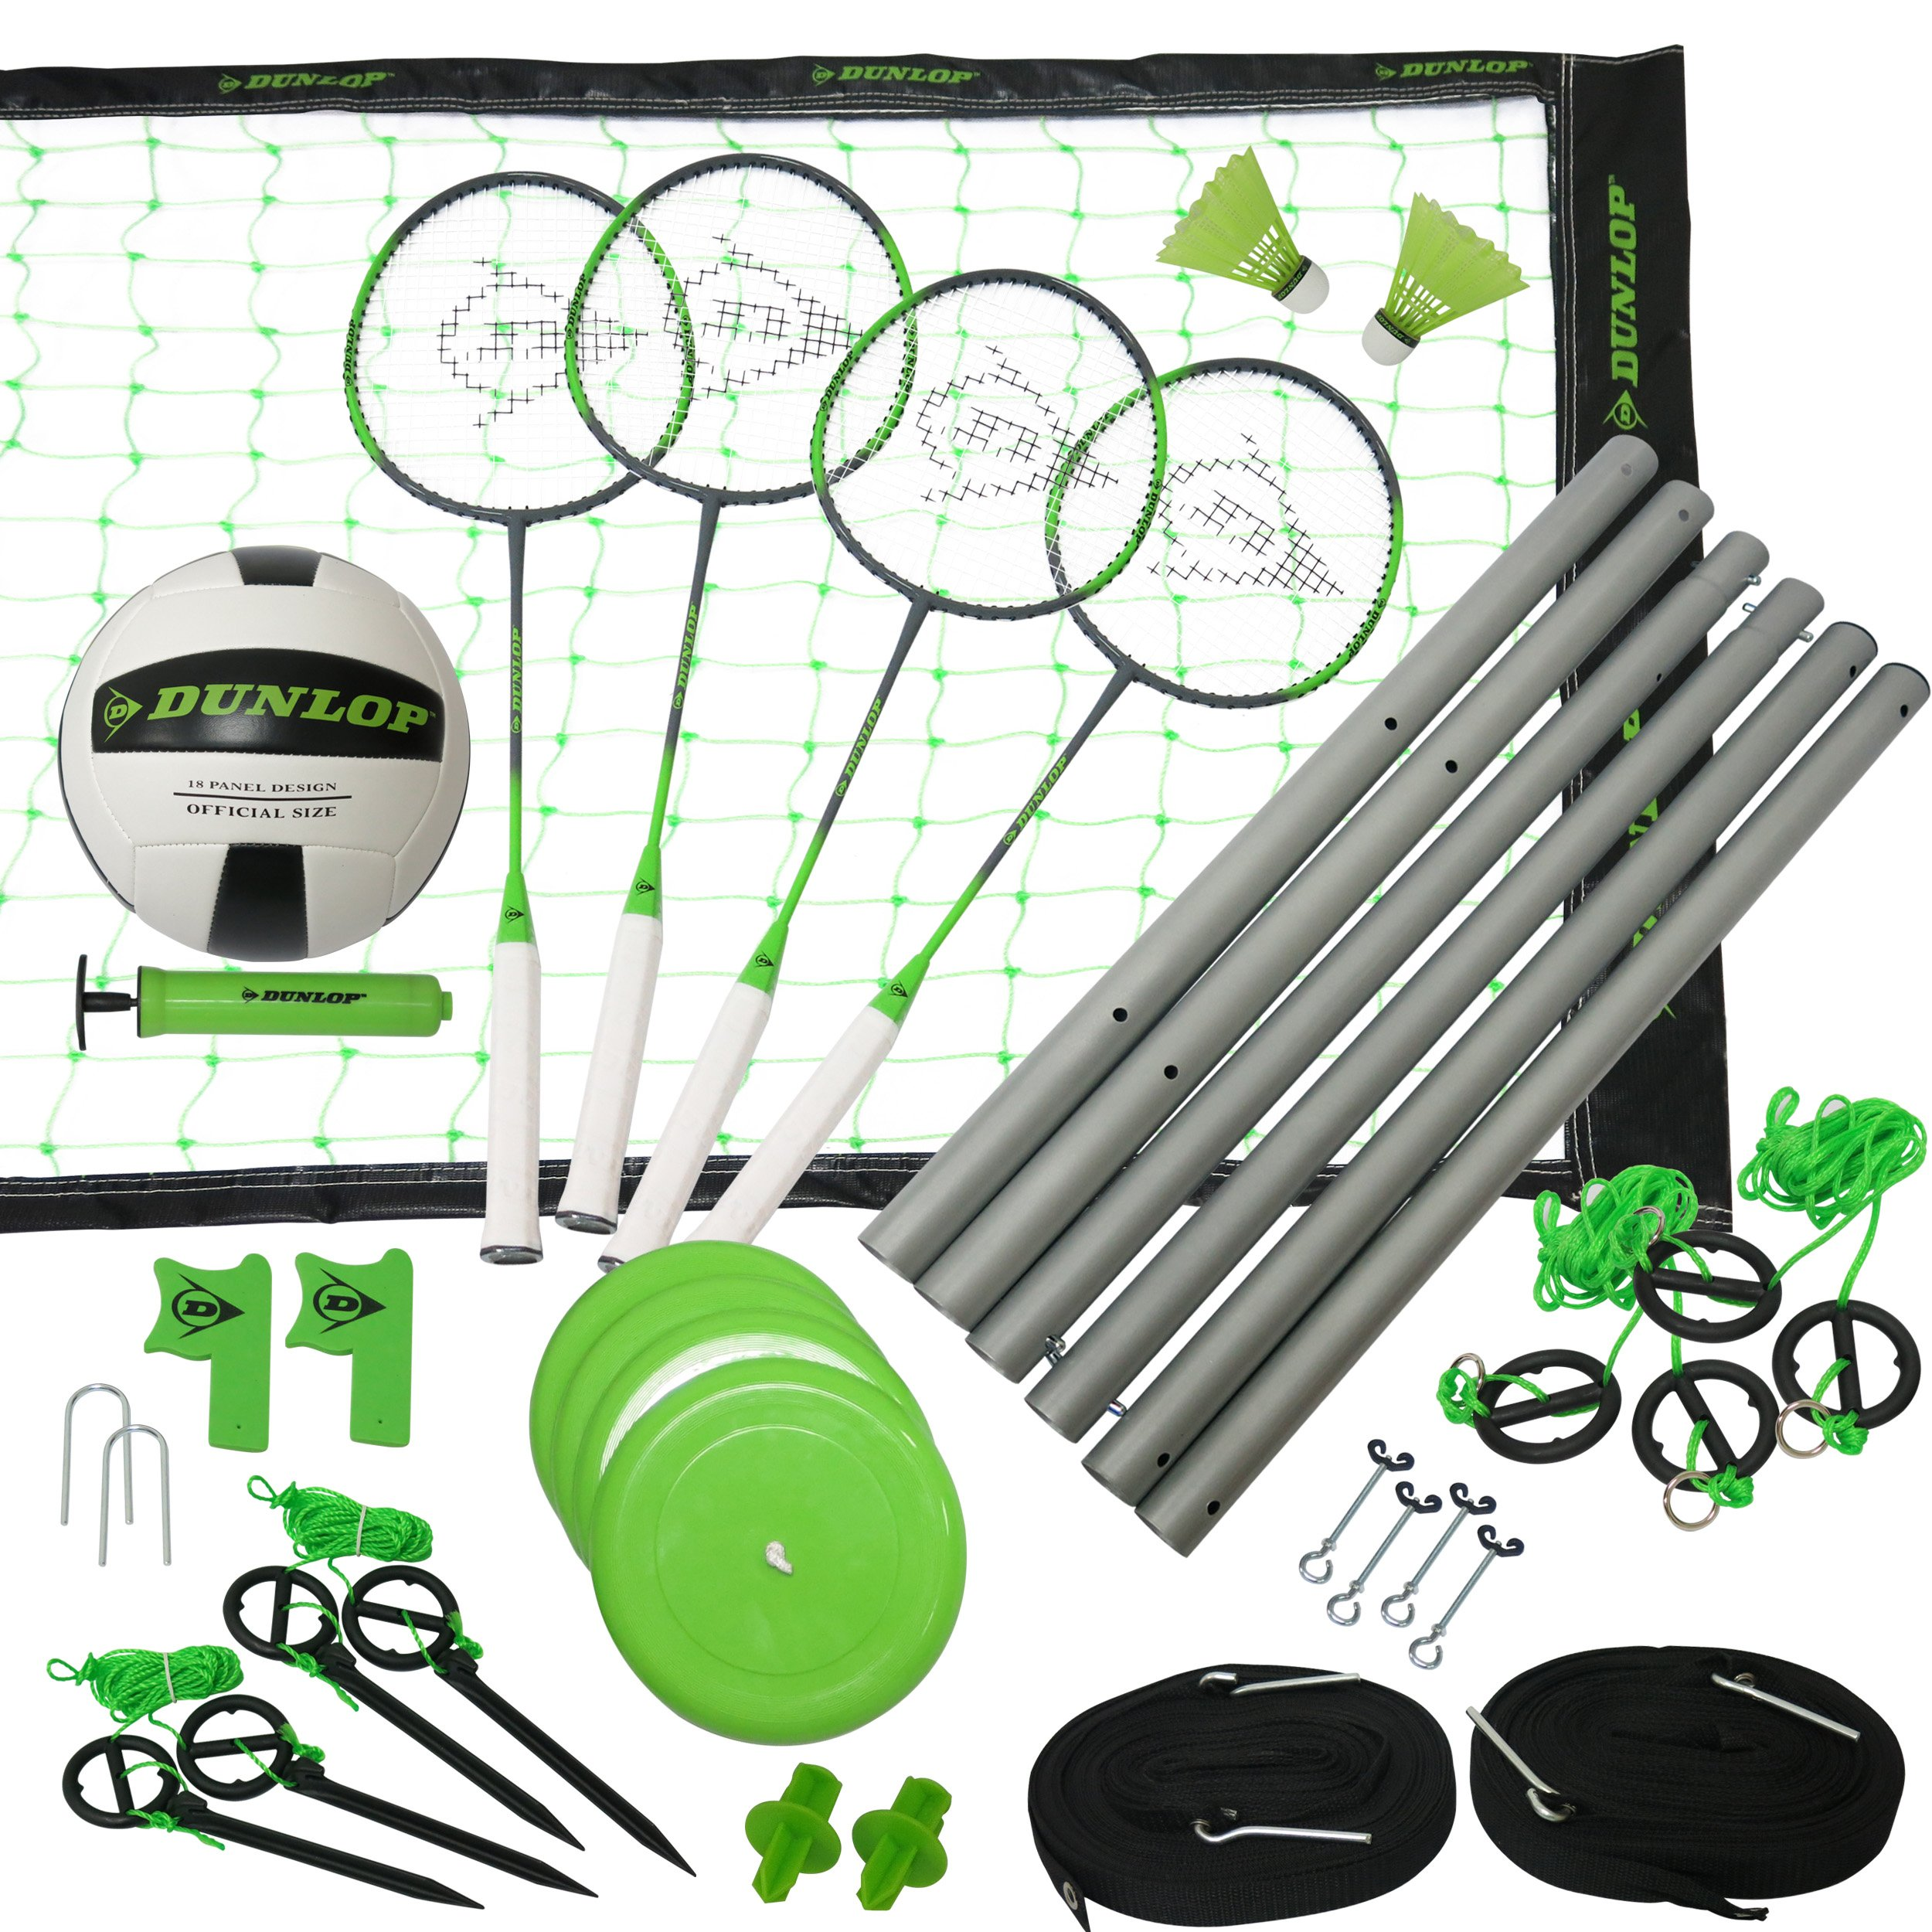 Dunlop Professional Volleyball Badminton Games: Classic Outdoor Lawn Game Set with Carry Bag by Dunlop (Image #1)